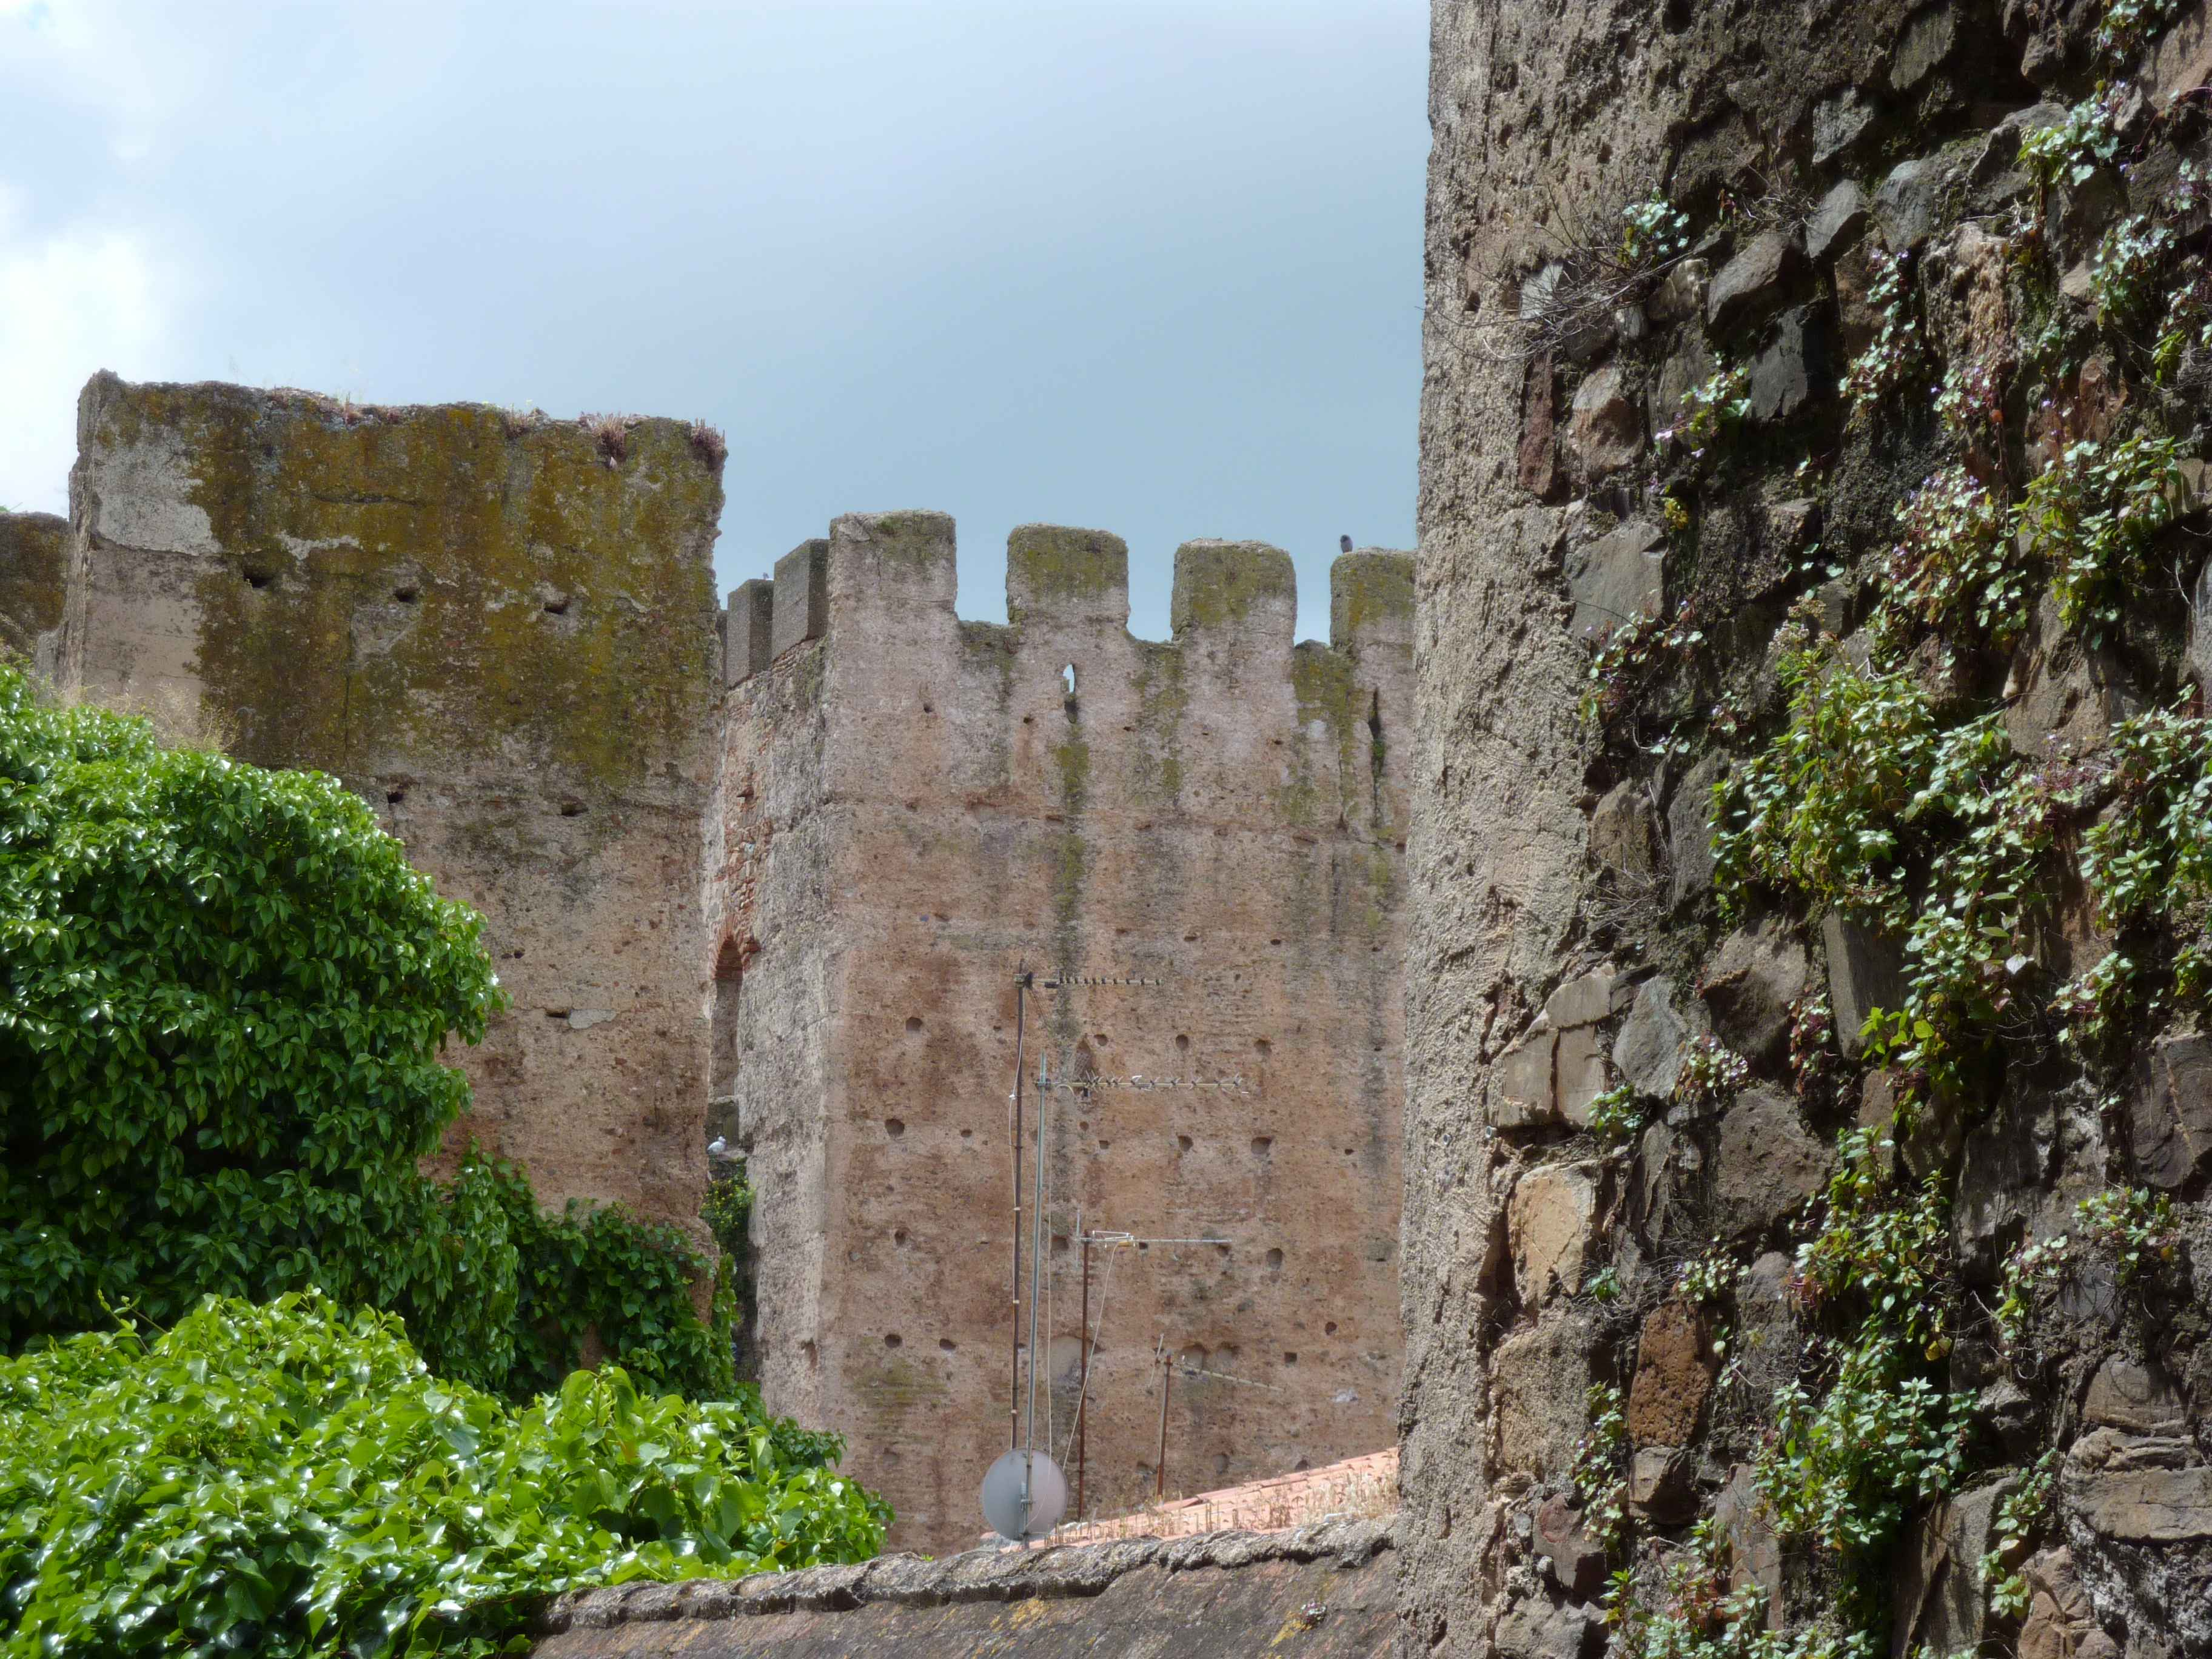 Fortification Caceres en Images